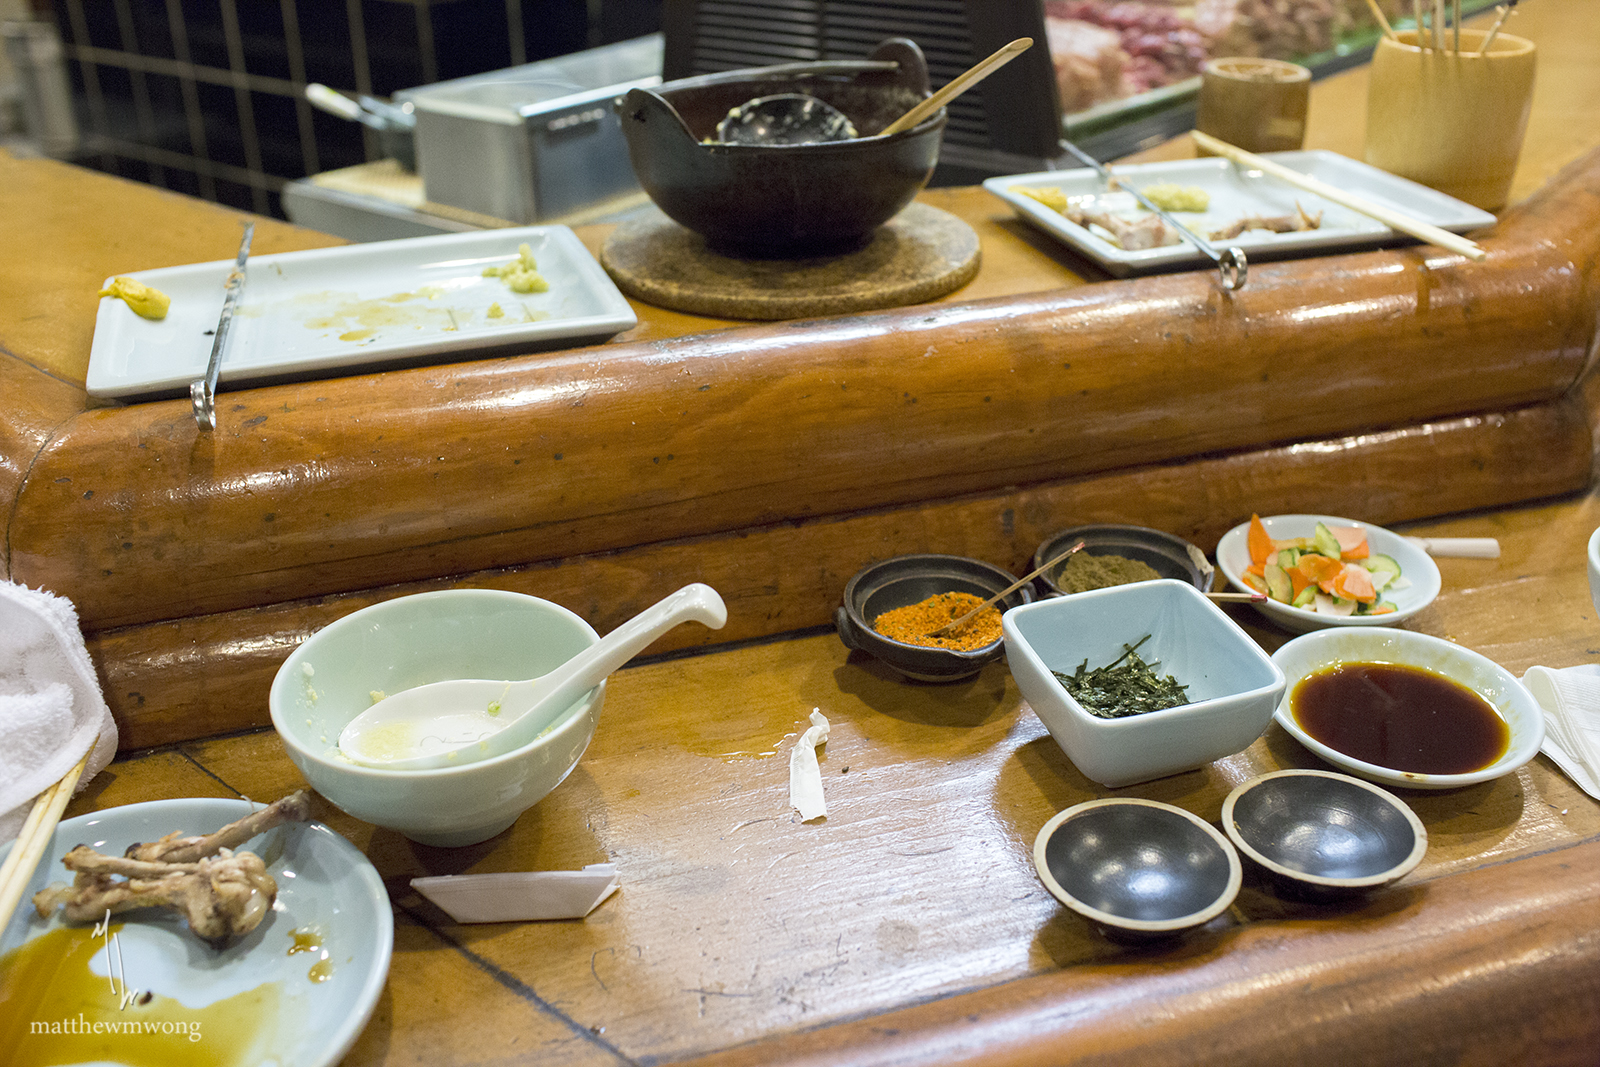 The aftermath of some tasty yakitori!